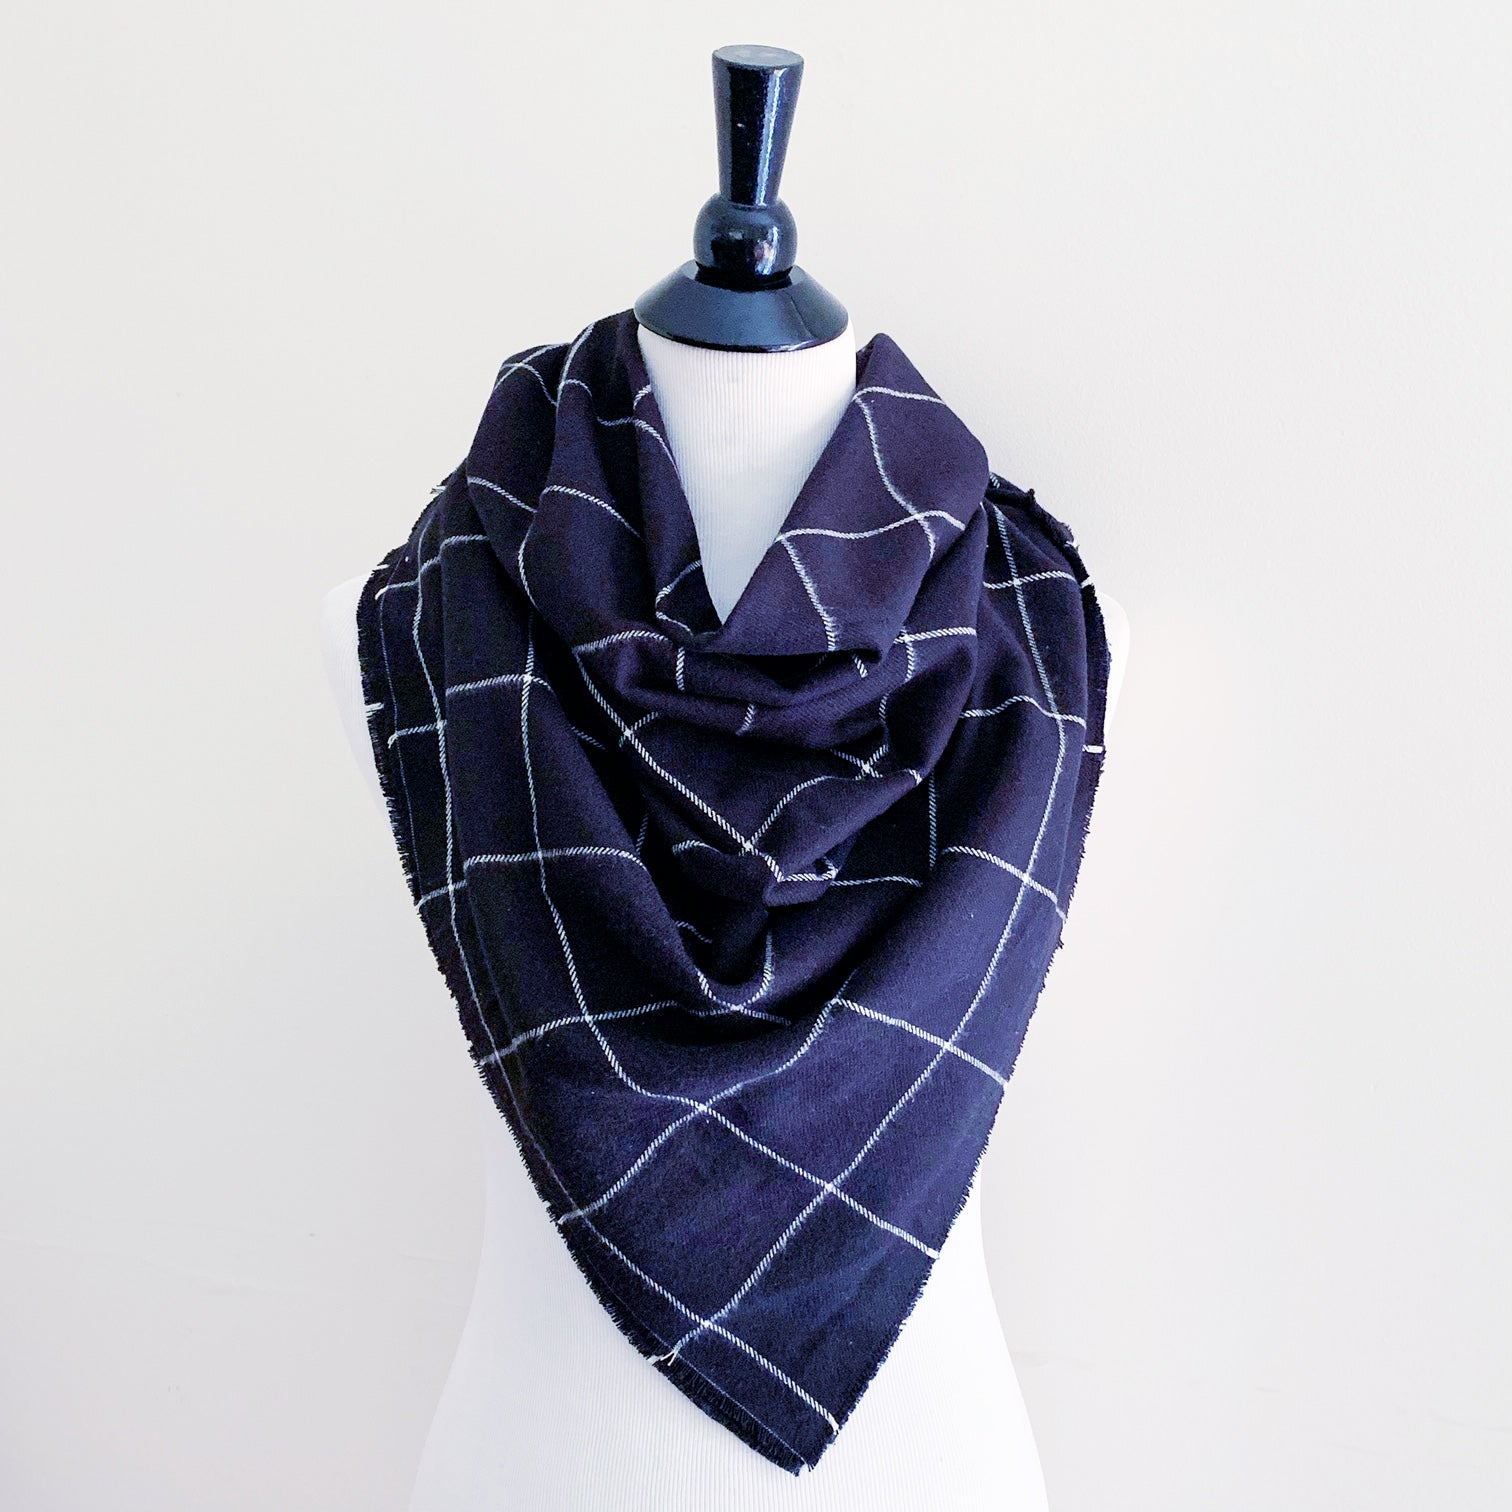 Blanket Scarf - White on Black Plaid